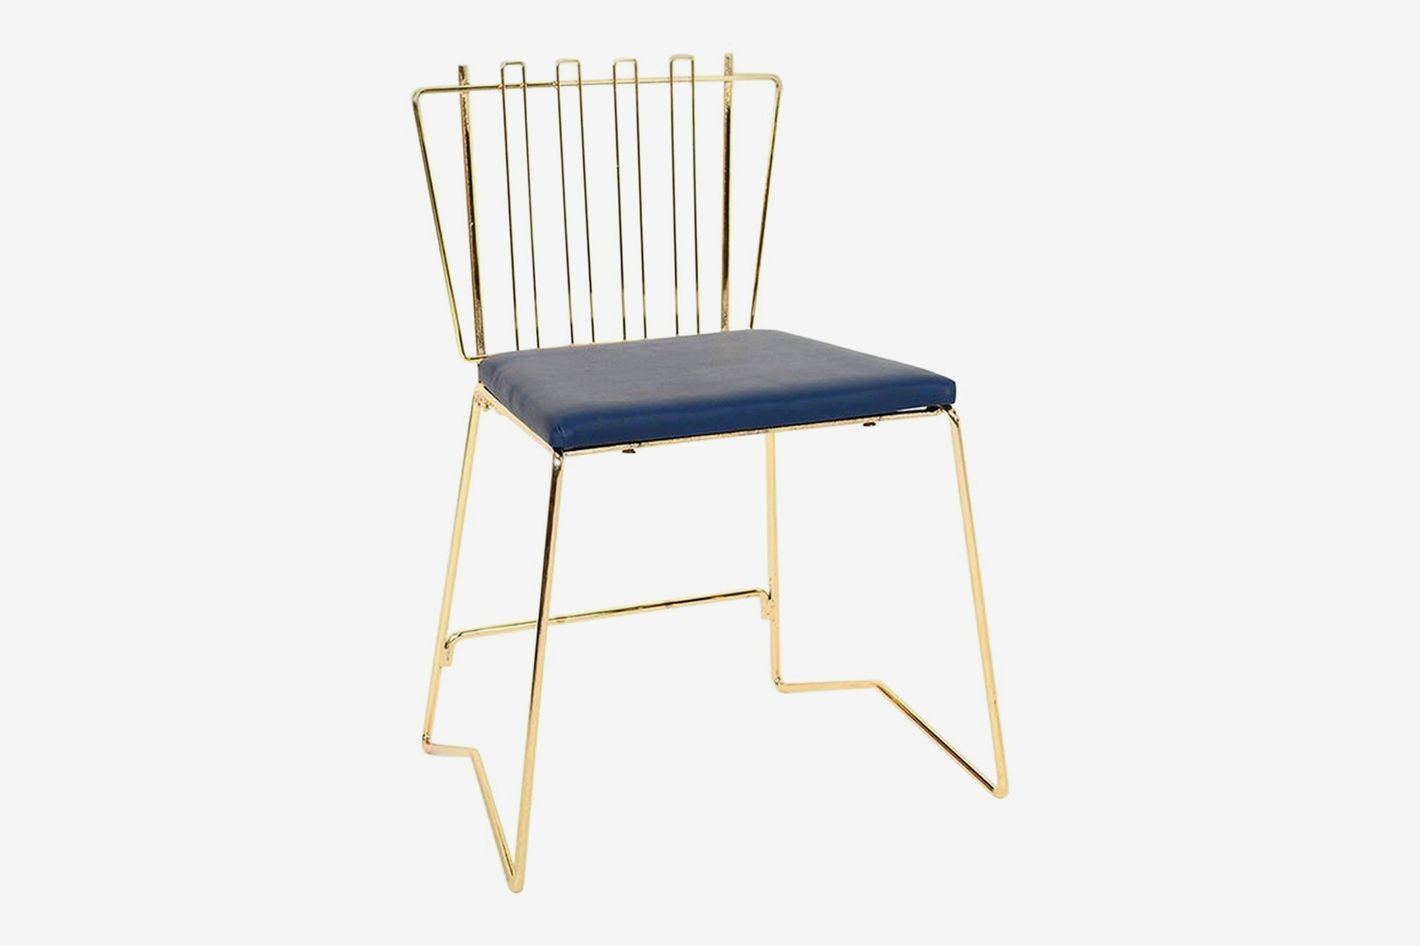 Stupendous The 19 Best Stacking And Folding Chairs 2019 The Squirreltailoven Fun Painted Chair Ideas Images Squirreltailovenorg